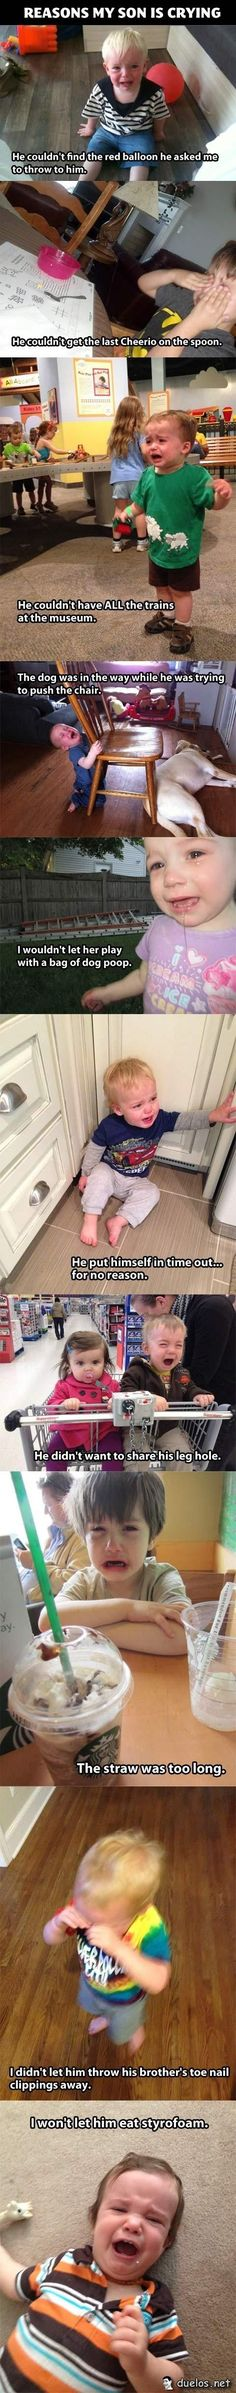 What makes a child cry? - Imgur